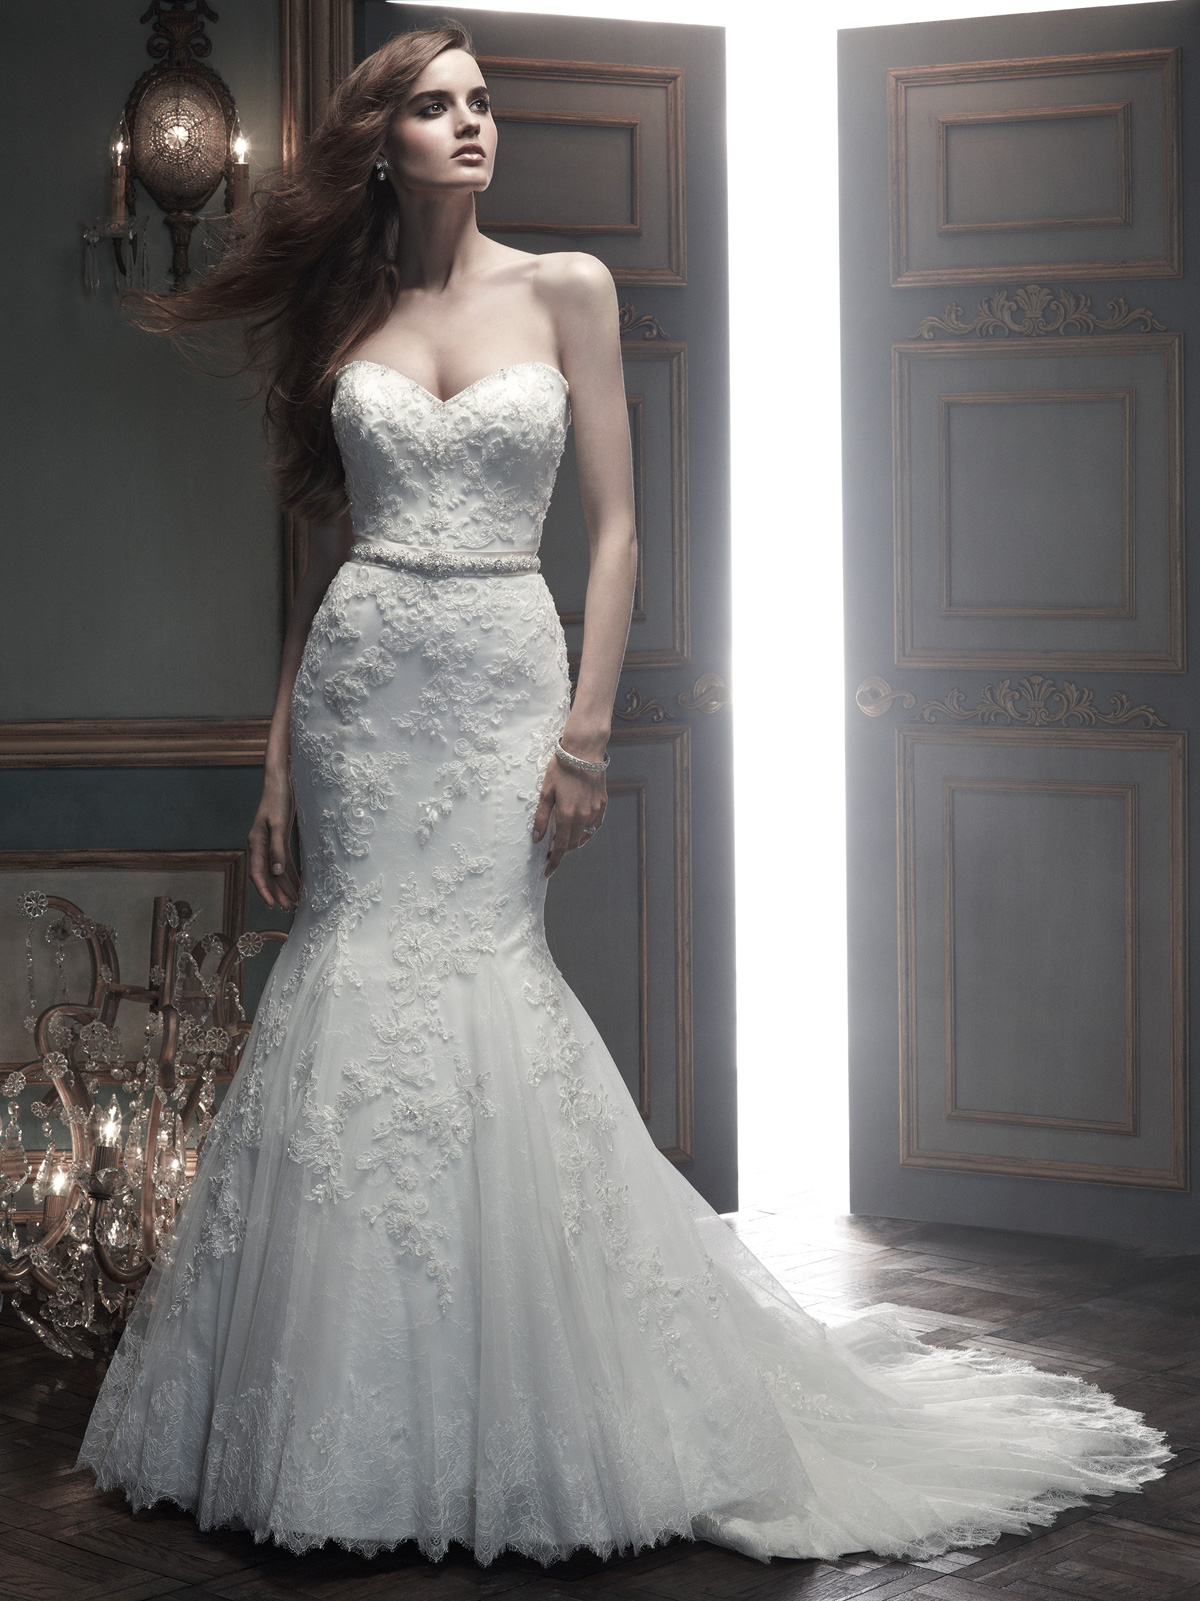 Sweetheart Mermaid CB Couture Bridal Gown B069|DimitraDesigns.com